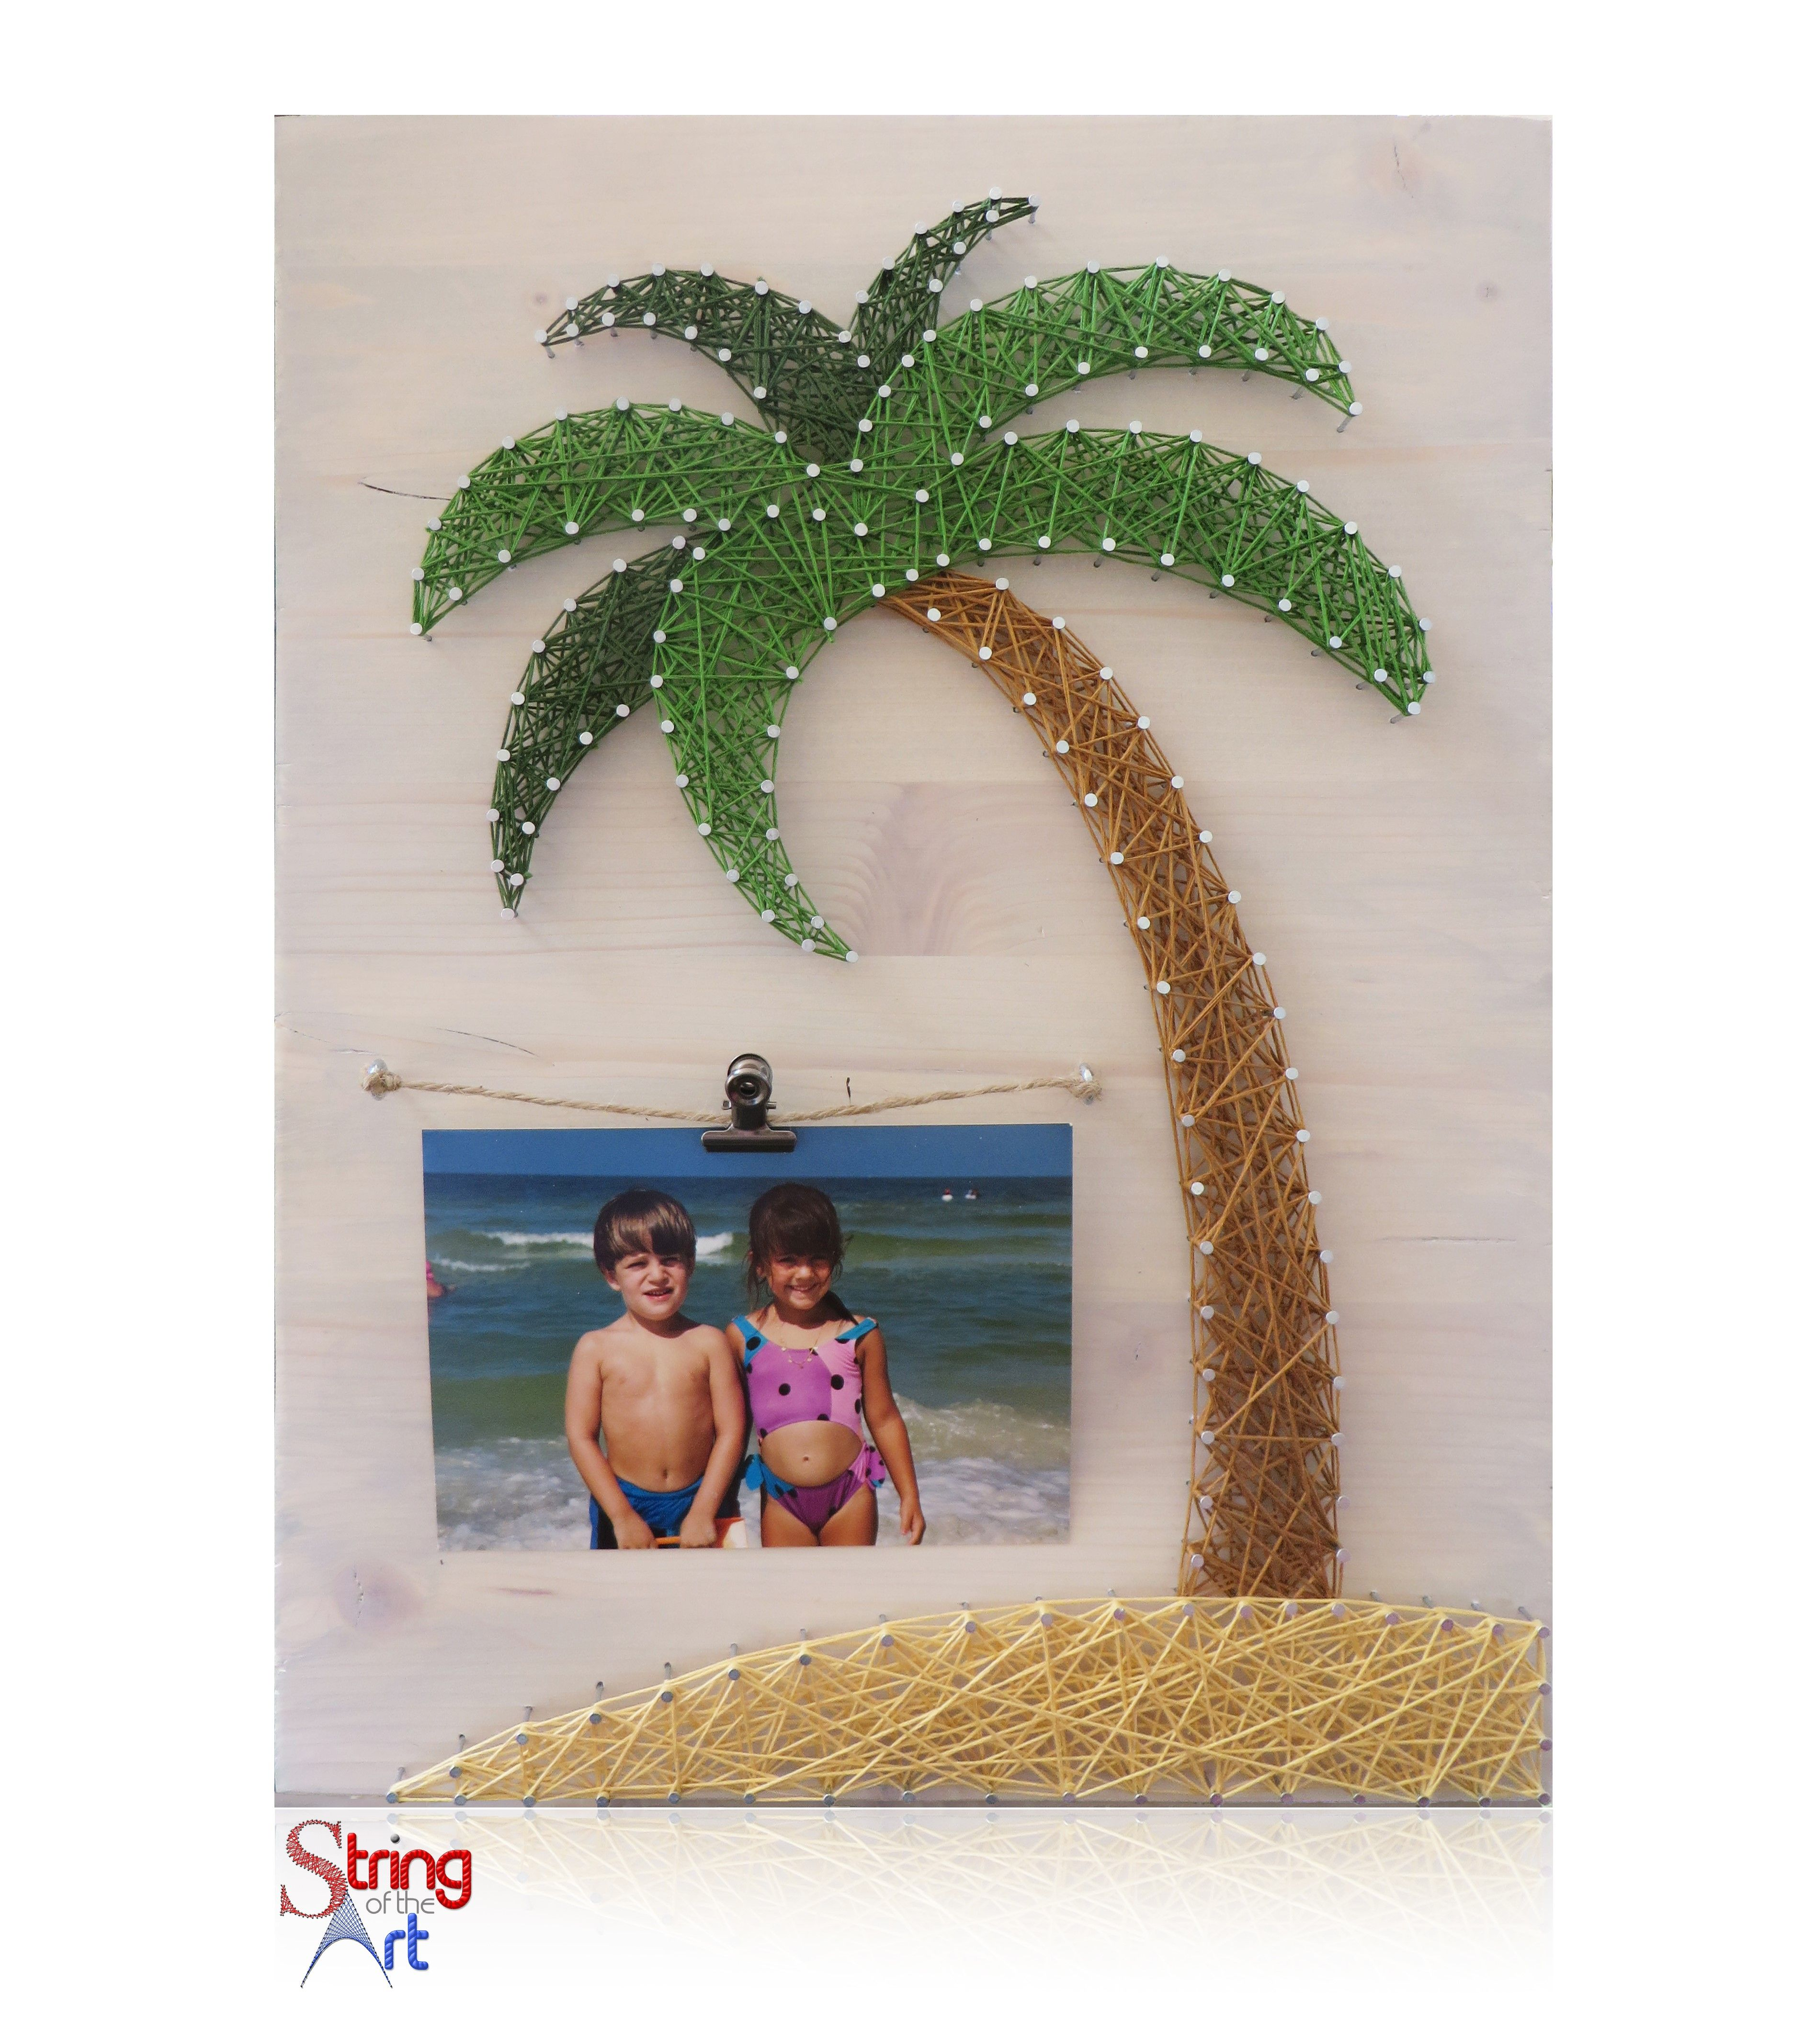 Diy string art kit picture frame string art picture frame palm diy string art kit picture frame string art picture frame palm tree beach beach picture frame diy diy kit crafts w all supplies solutioingenieria Image collections